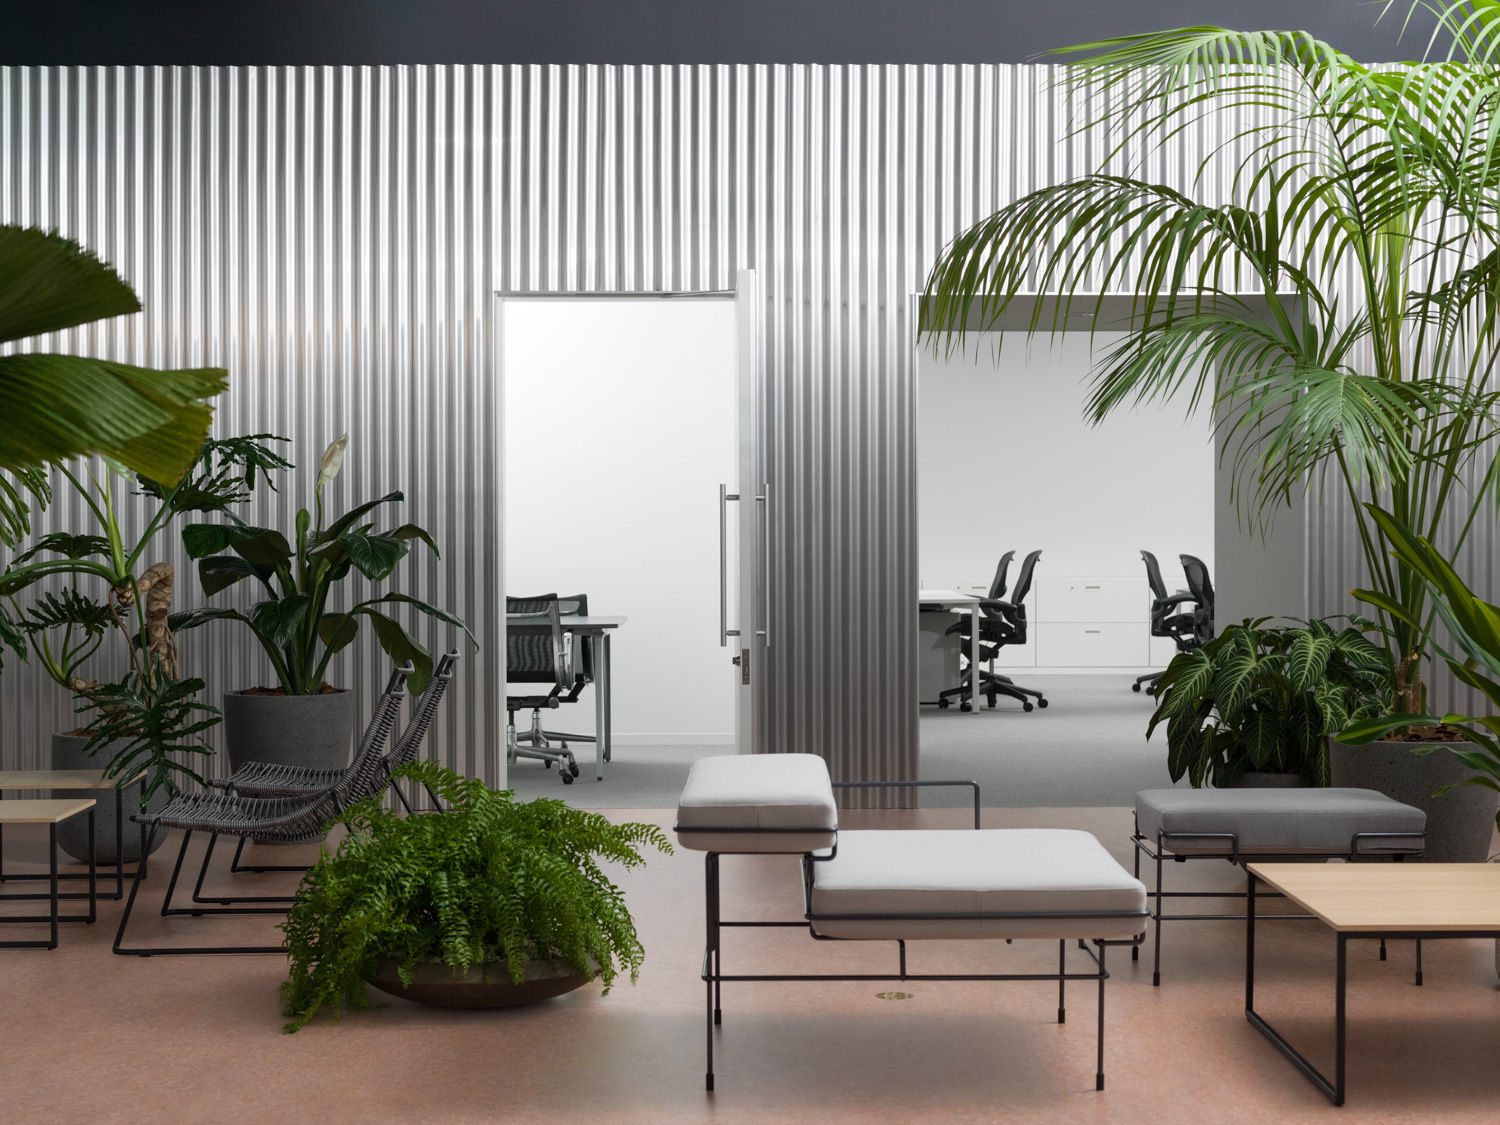 office-with-a-patio_20180520_186-Edit_180622_fin_w1500px_72ppi_q80_s-rgb_v03